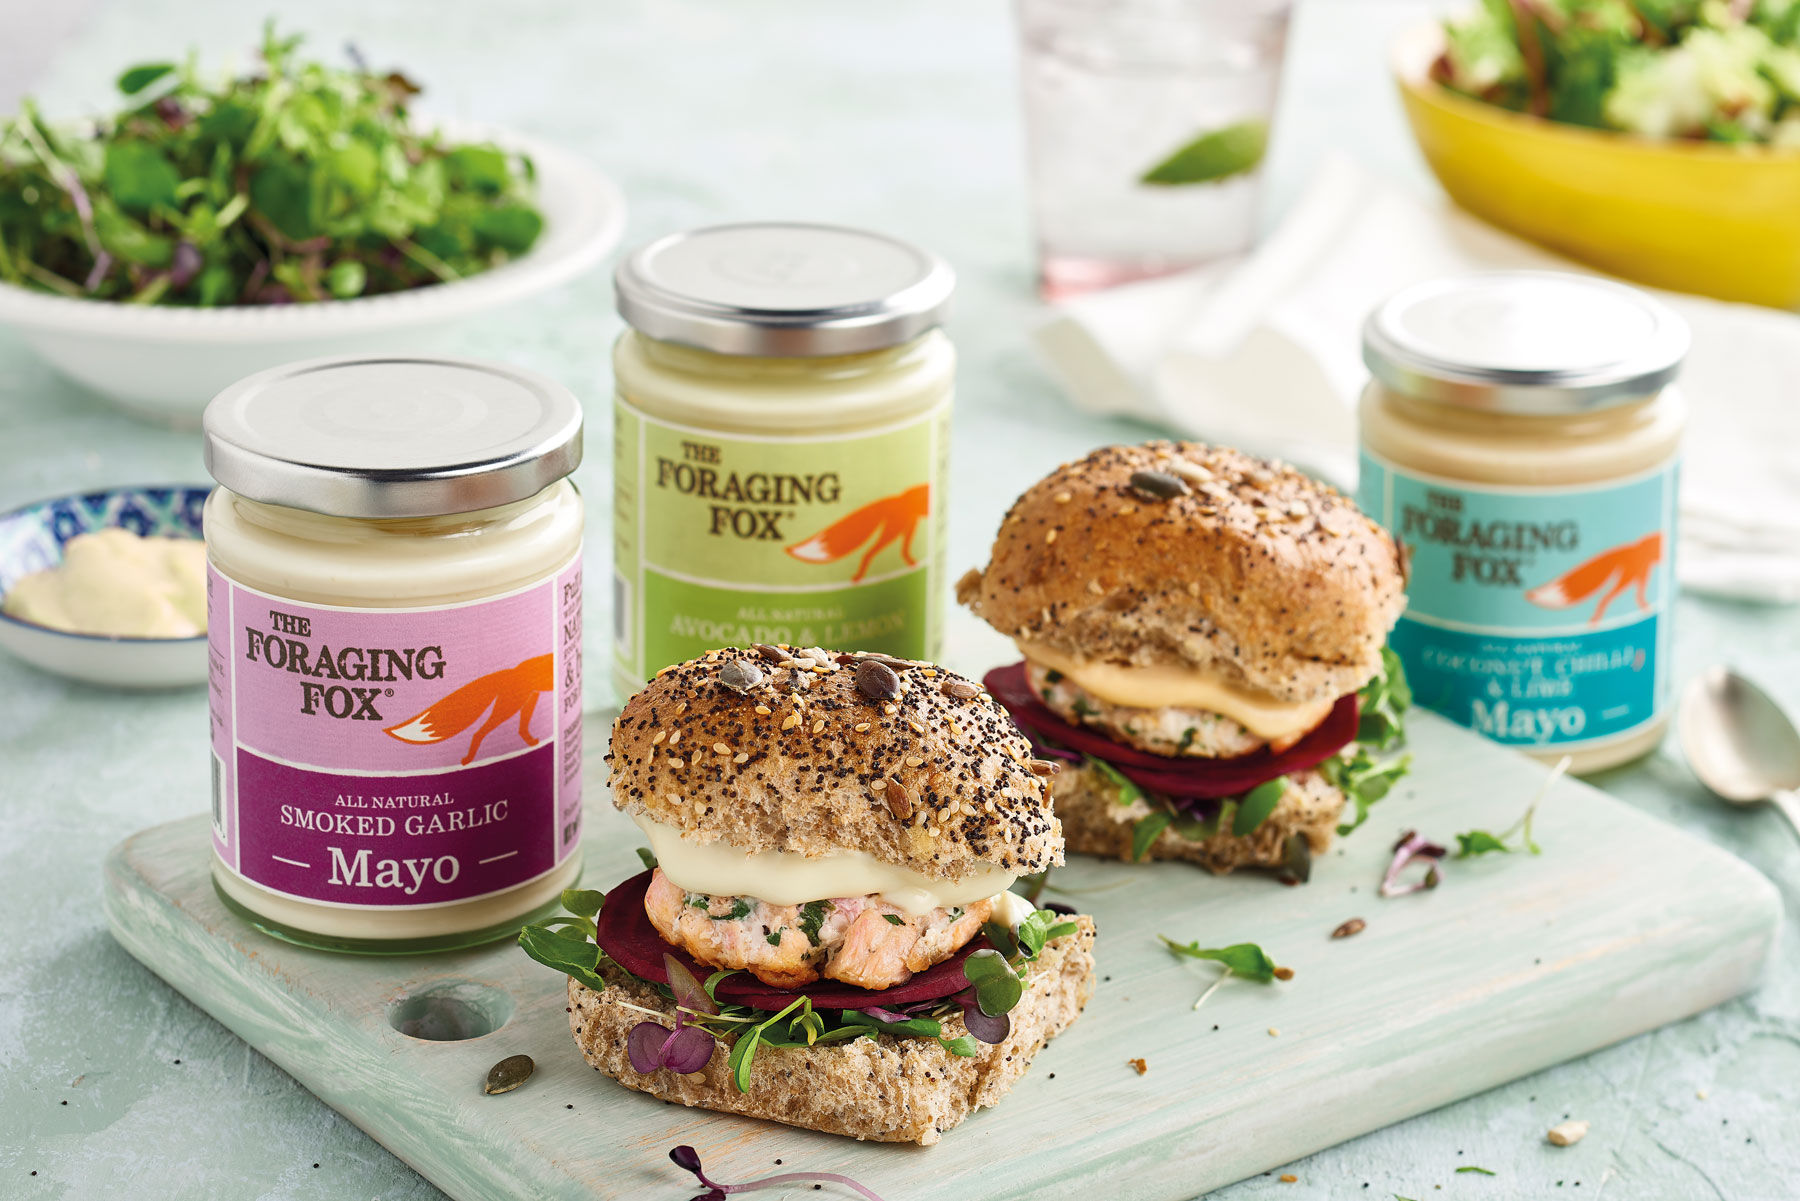 Foraging Fox Mayo range